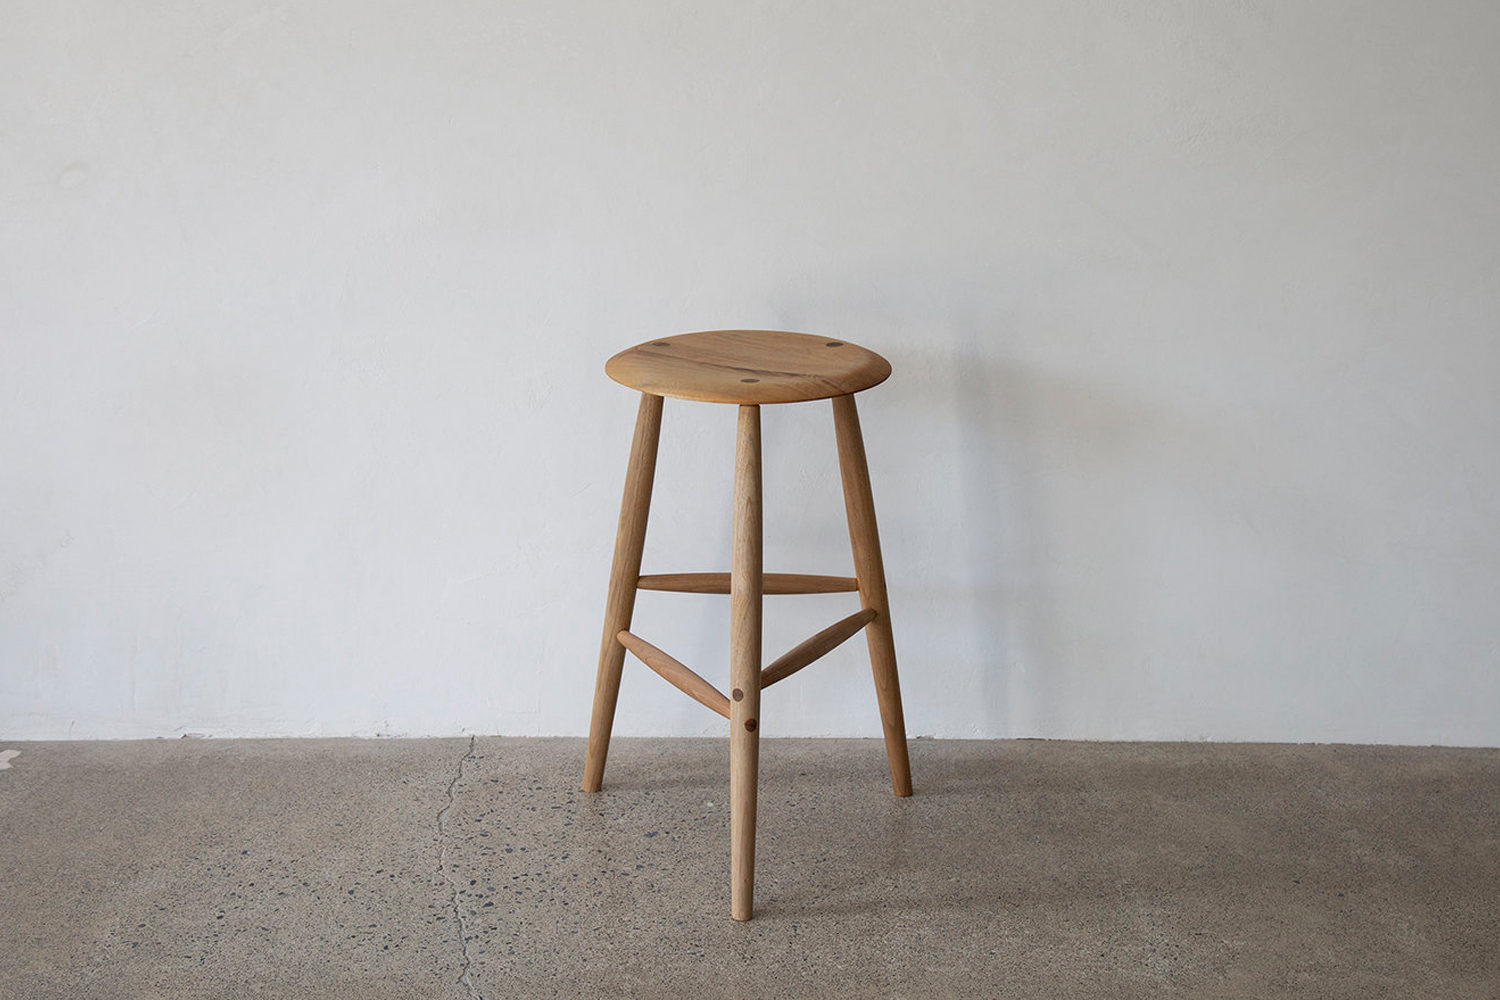 Designed and handmade in Rhinebeck, New York, the Sawkille Co. Tall Stool comes in a range of woods, finishes, and heights. Contact Sawkille Co. for price and ordering information.